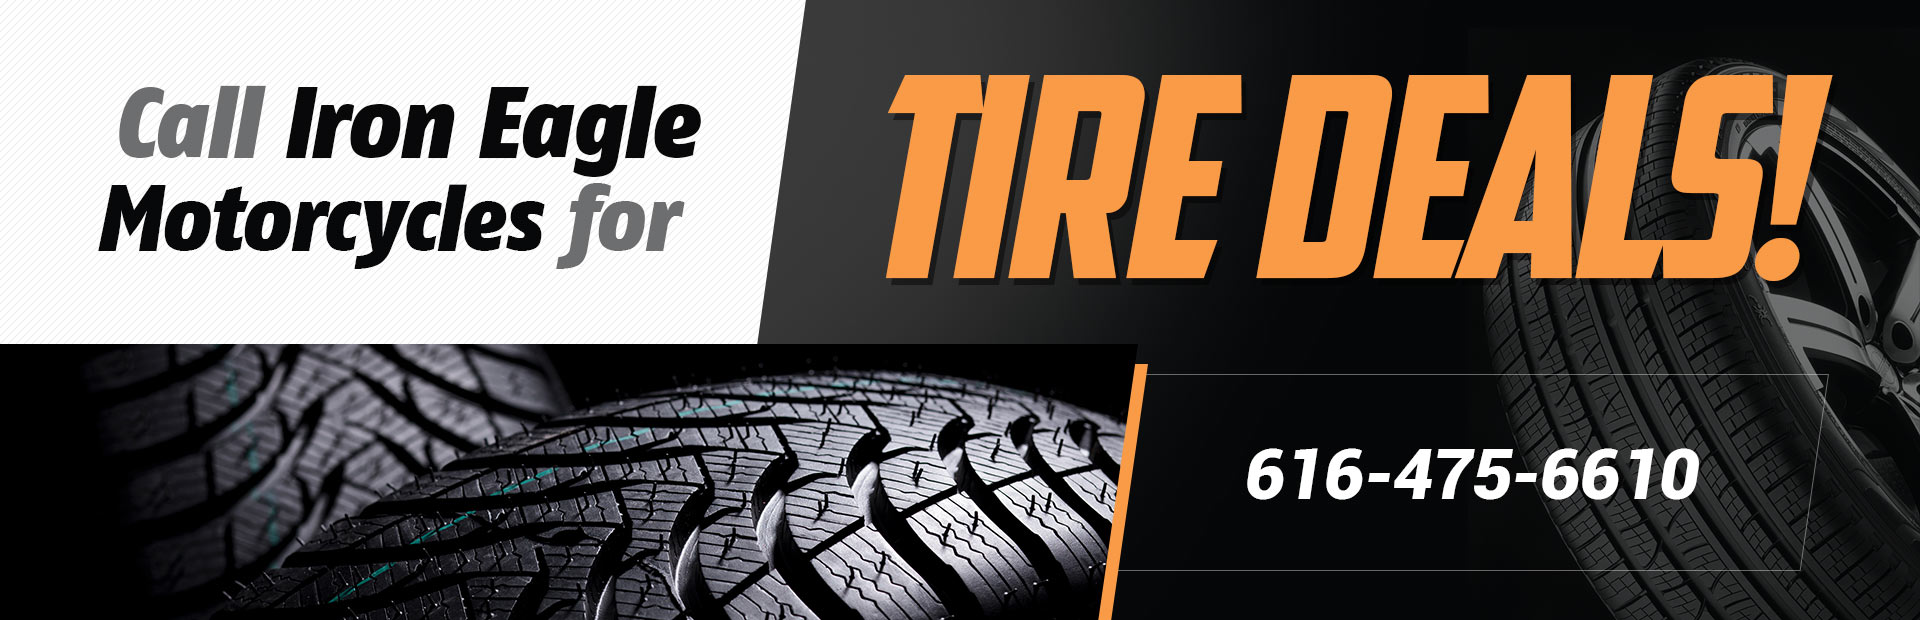 Call Iron Eagle Motorcycles at (616) 475-6610 for tire deals!